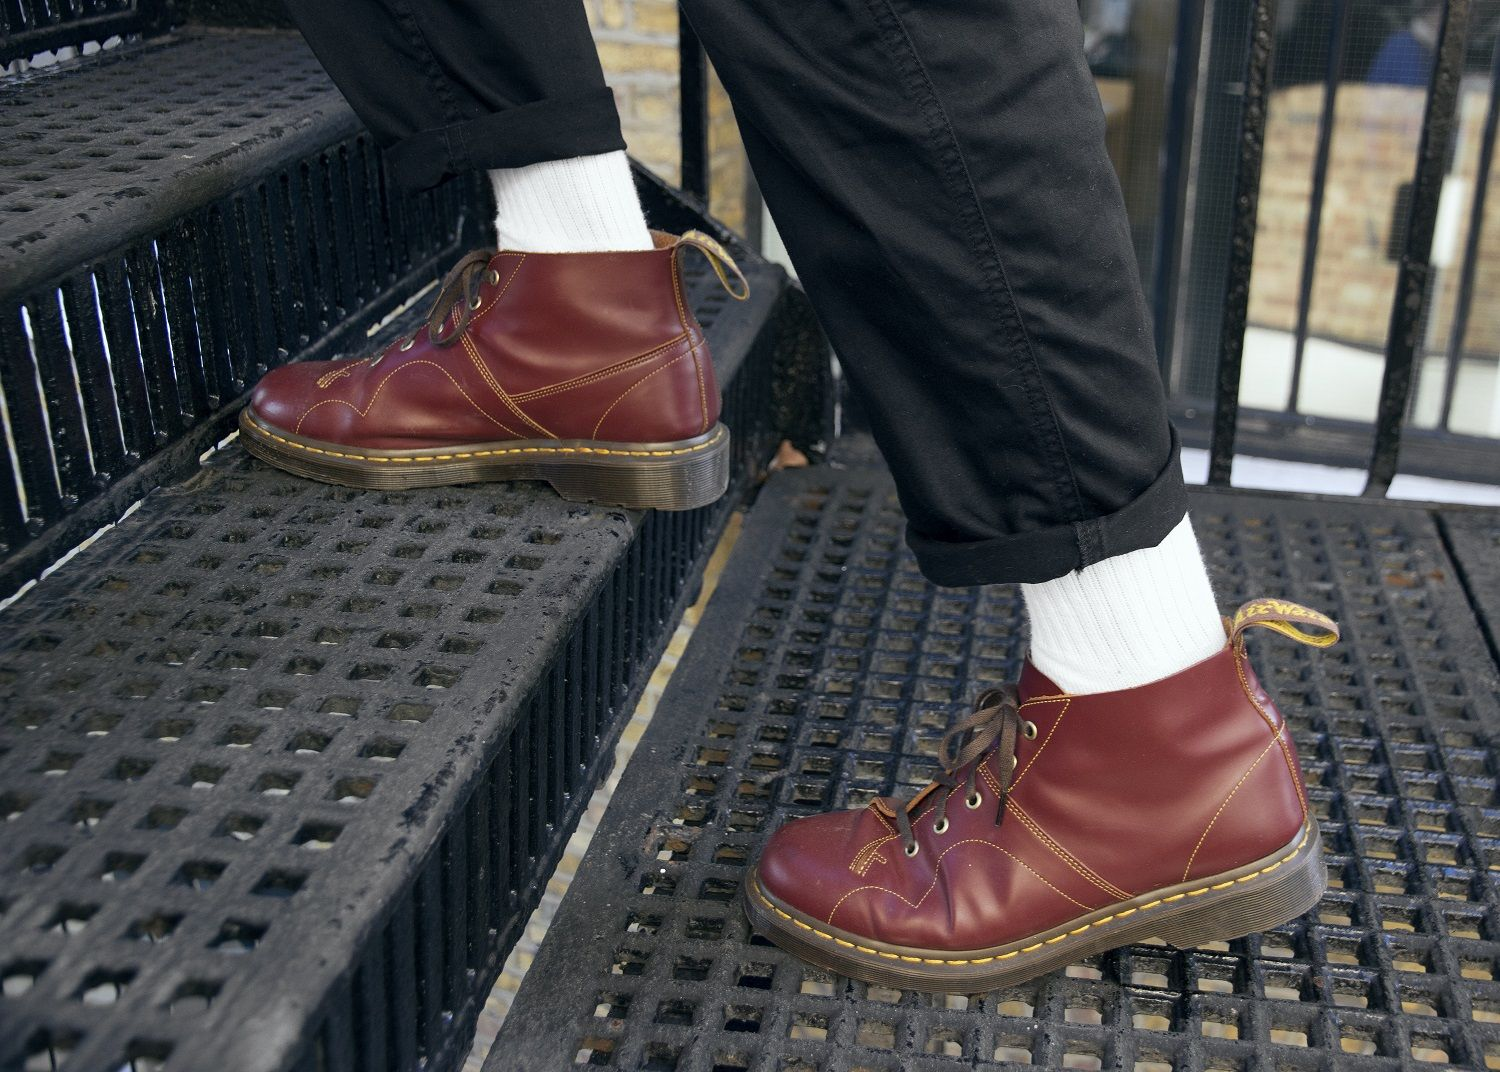 Dr martens church leather monkey boots | Doc martens, Types